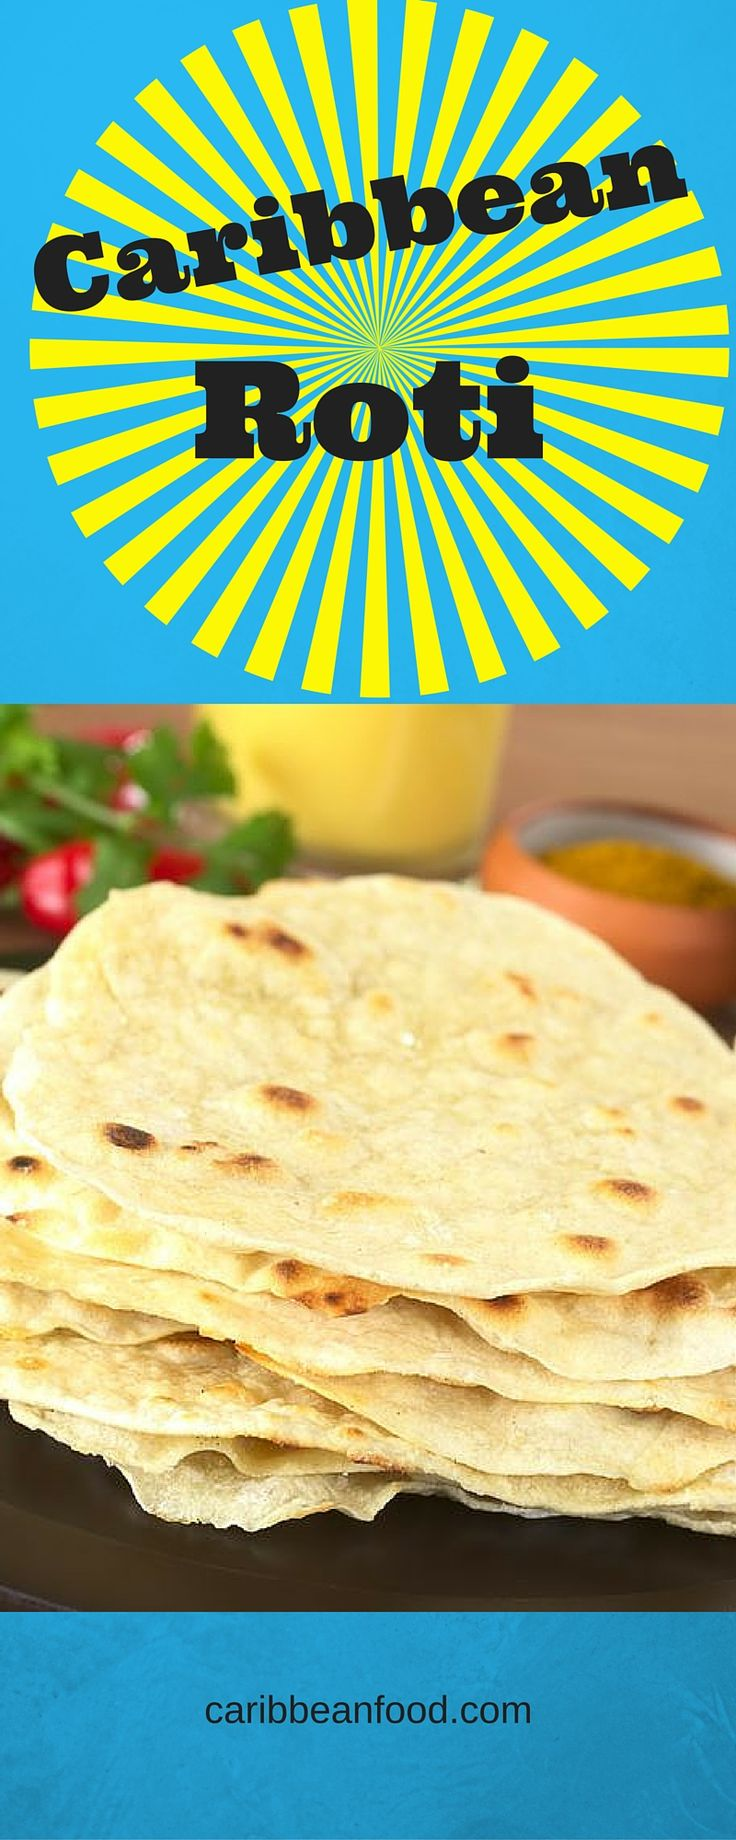 Caribbean Roti is a type of flat, unleavened bread served in Caribbean countries. It looks similar to a Mexican tortilla, but has a slightly thicker consistency.